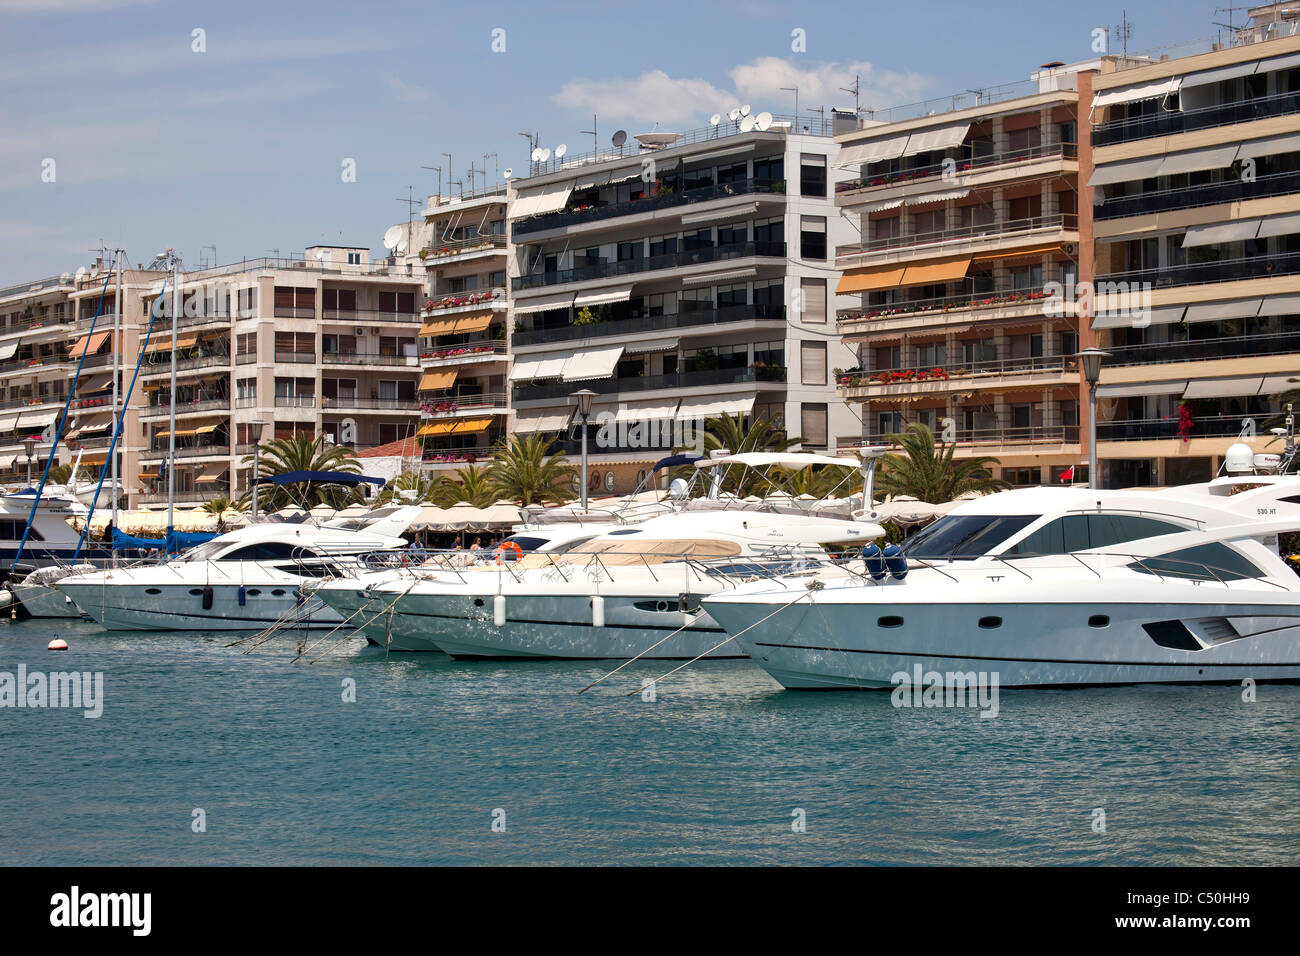 Yachts at the harbour of the coastal port city Volos in Thessaly on the Greek mainland, Greece - Stock Image